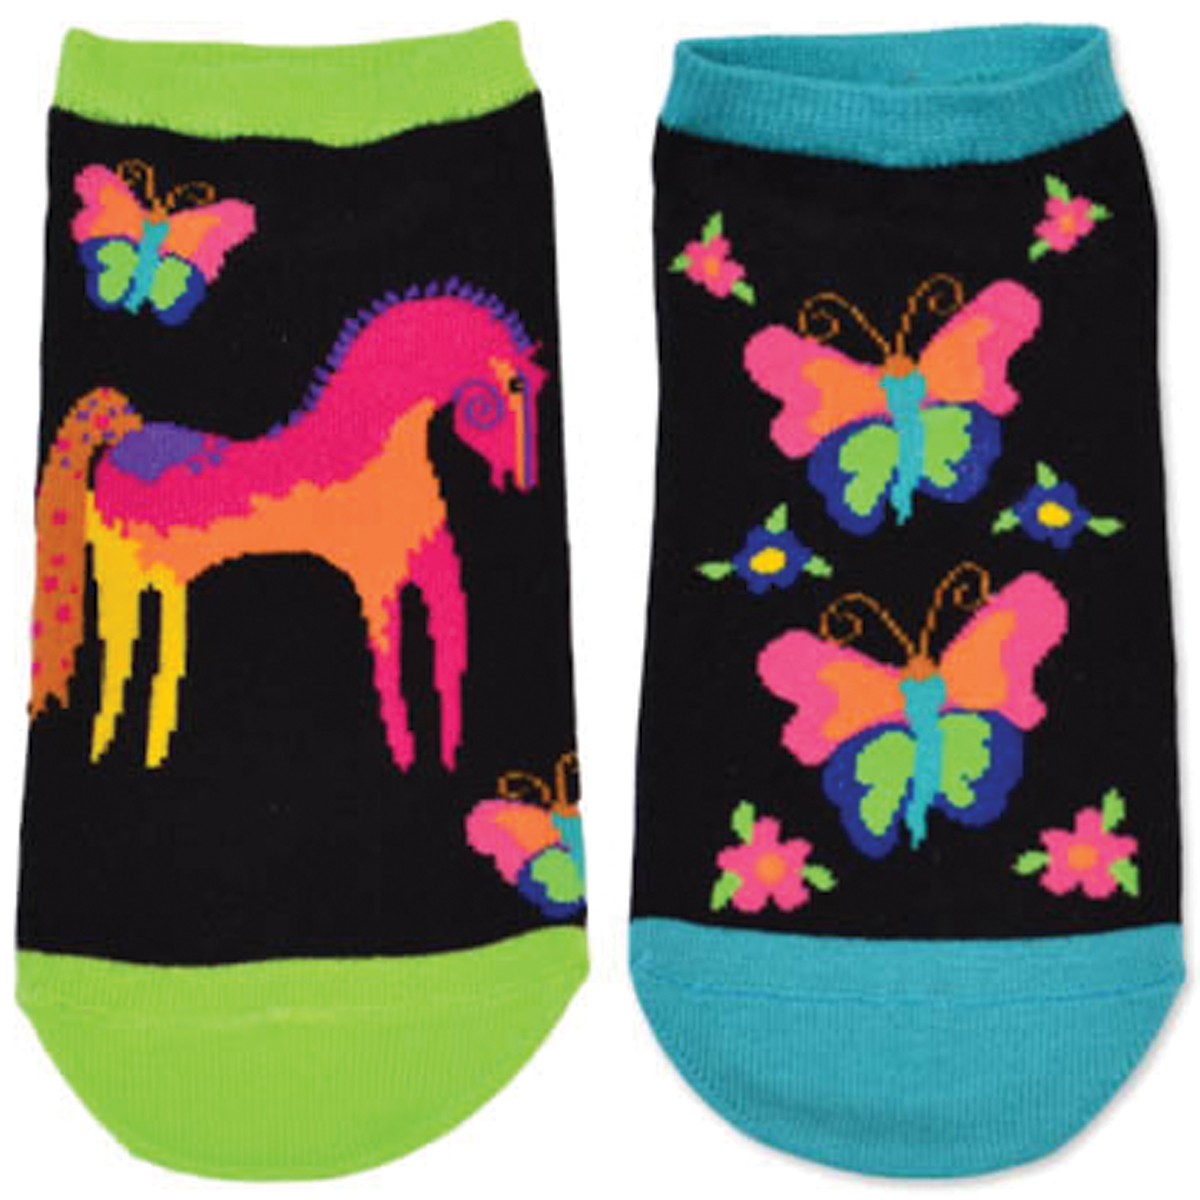 Laurel Burch Socks 2/Pair-Mystical Horse